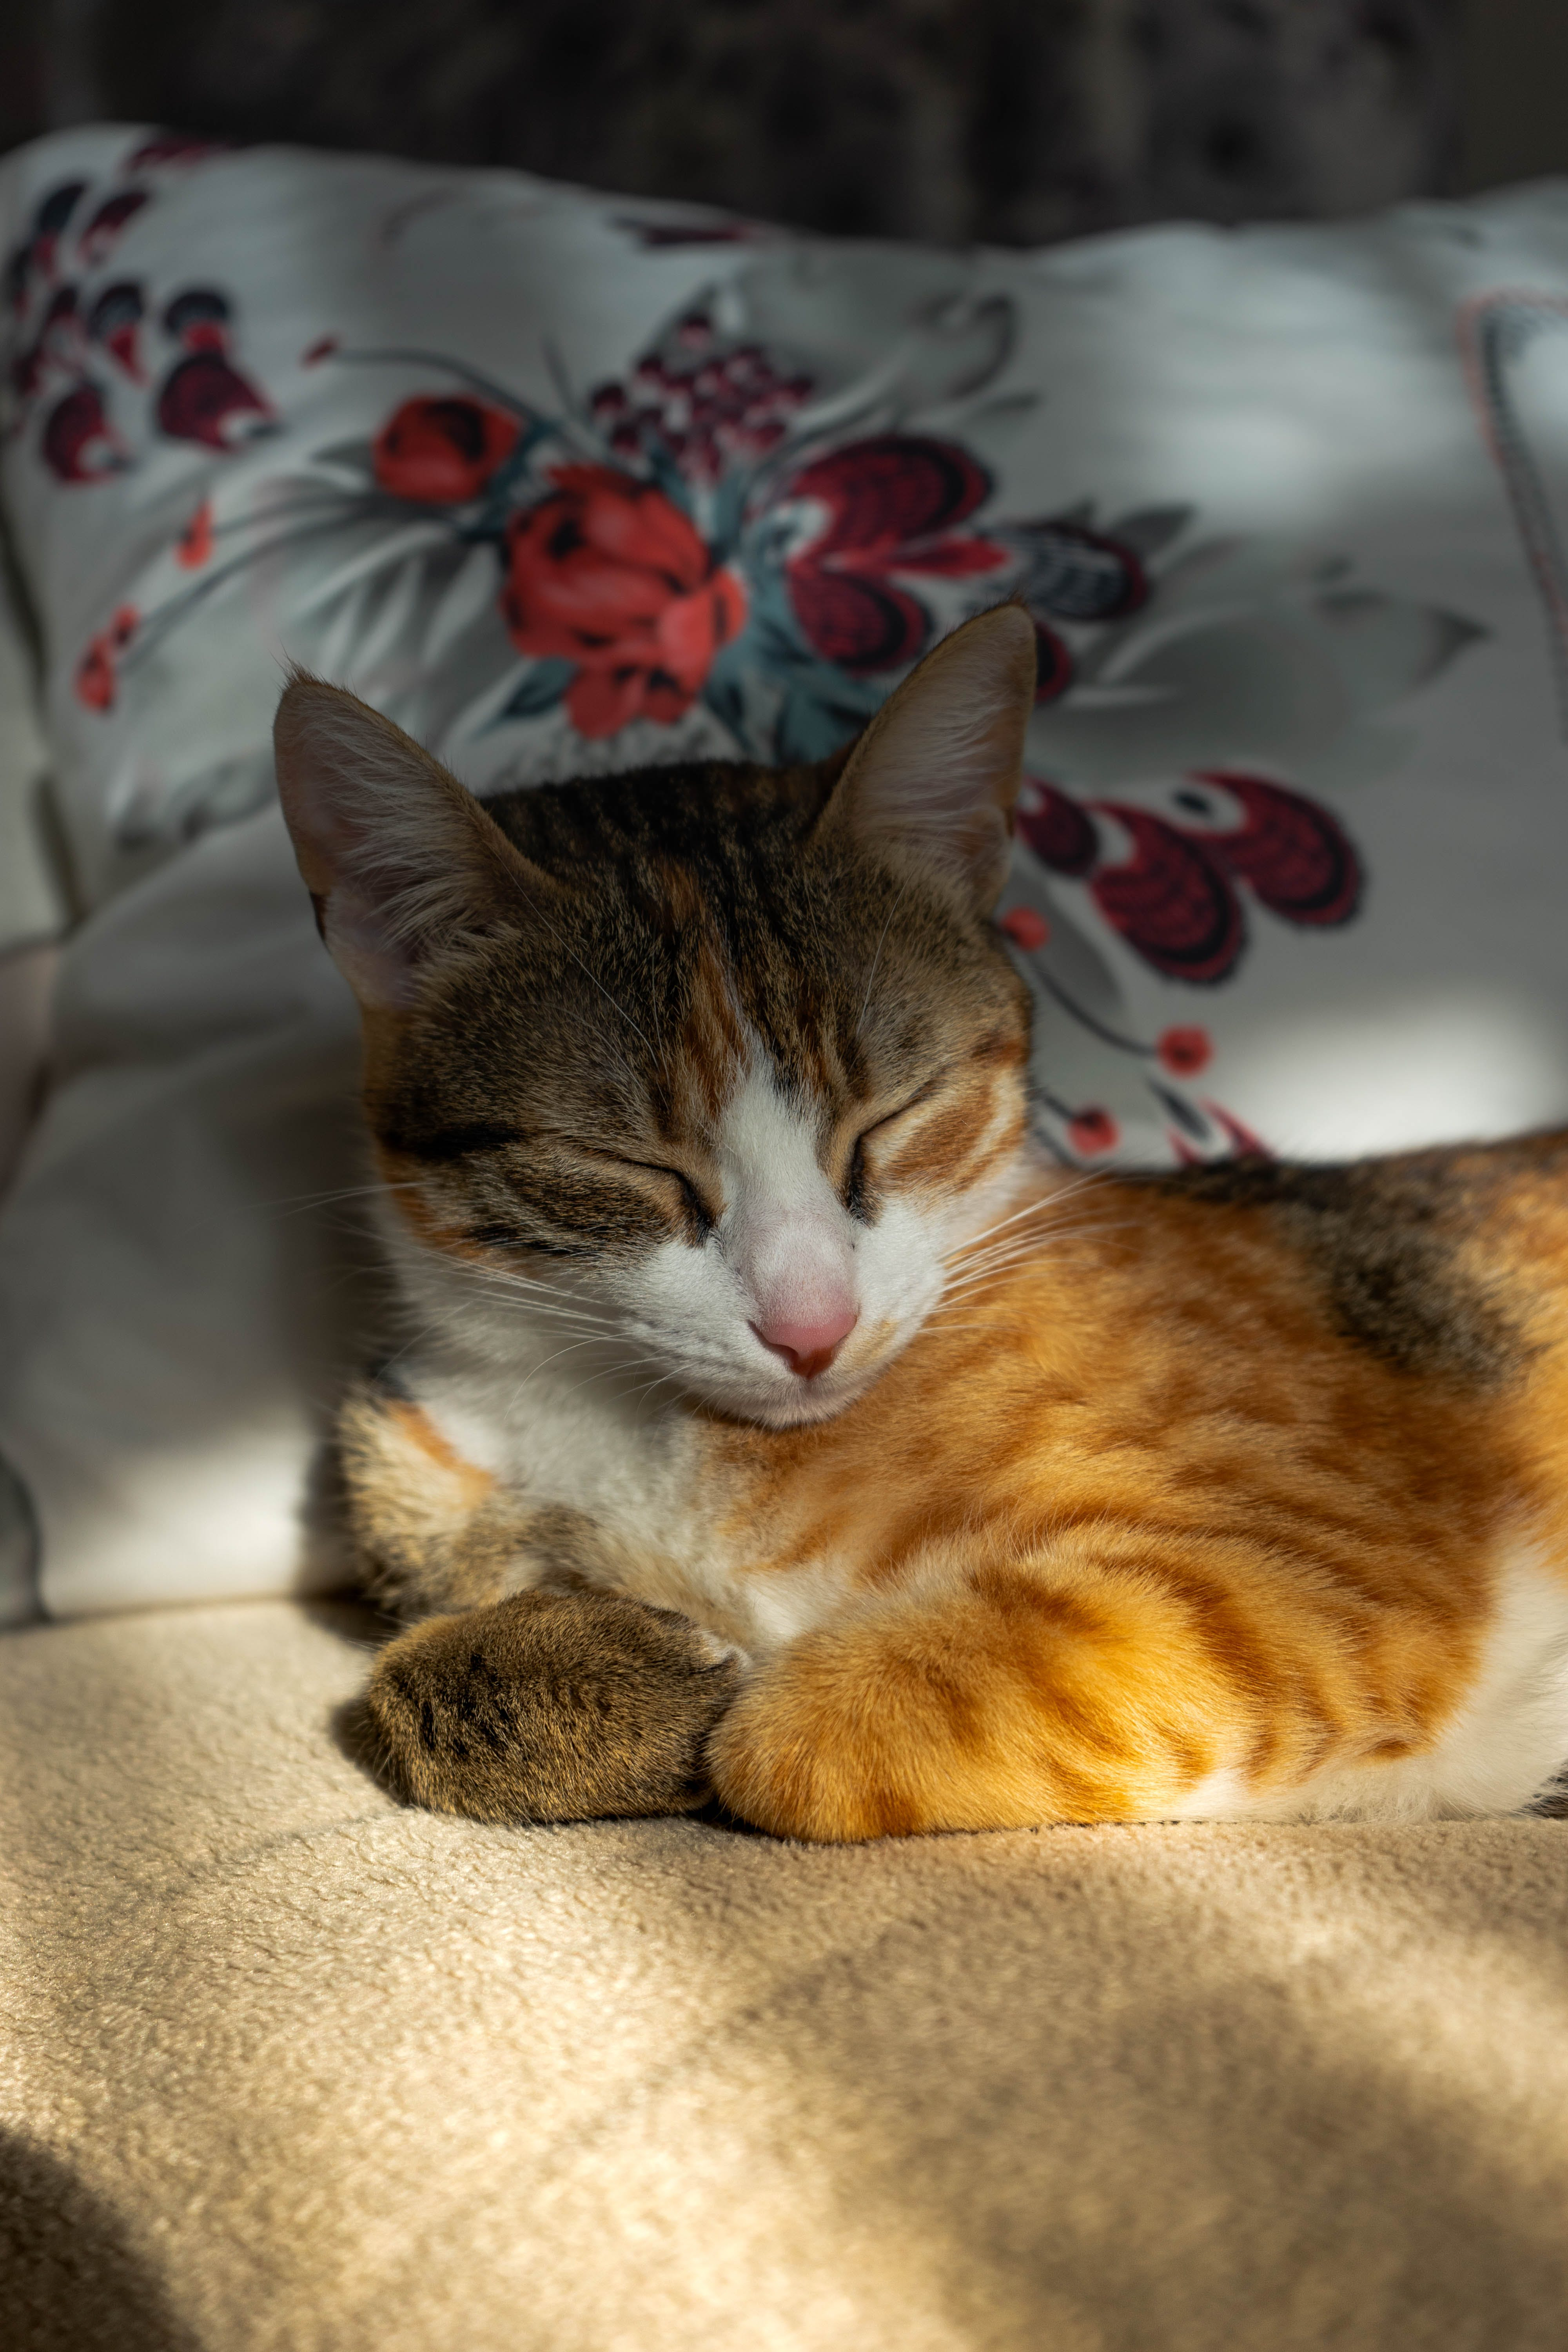 Orange and Brown Tabby Kitten Sitting on Beige Textile